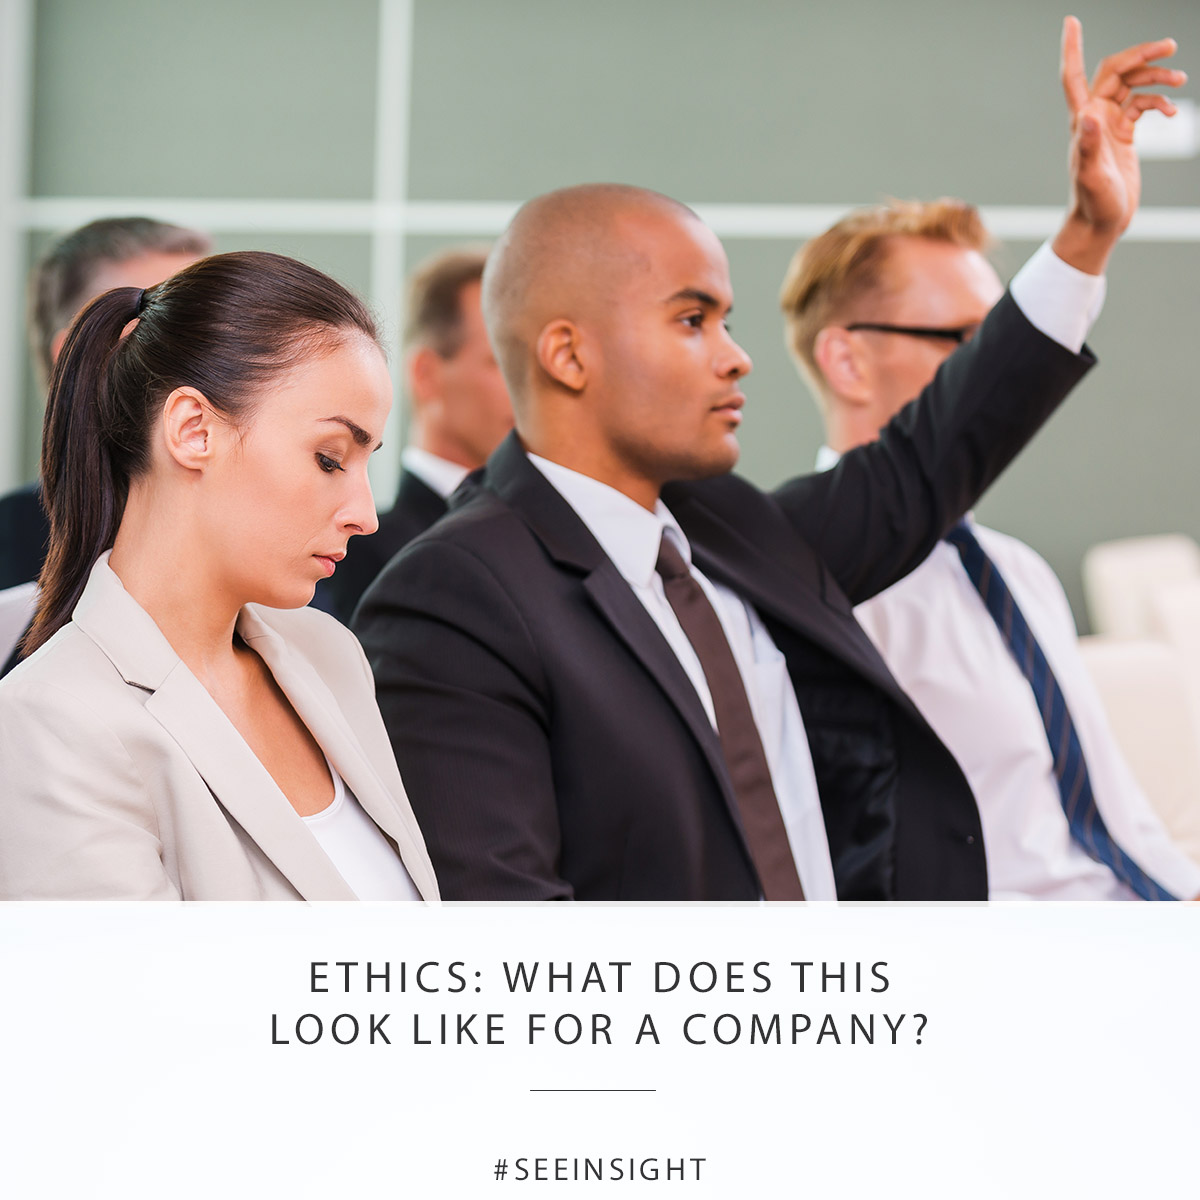 Ethics: What does this look like for a company?